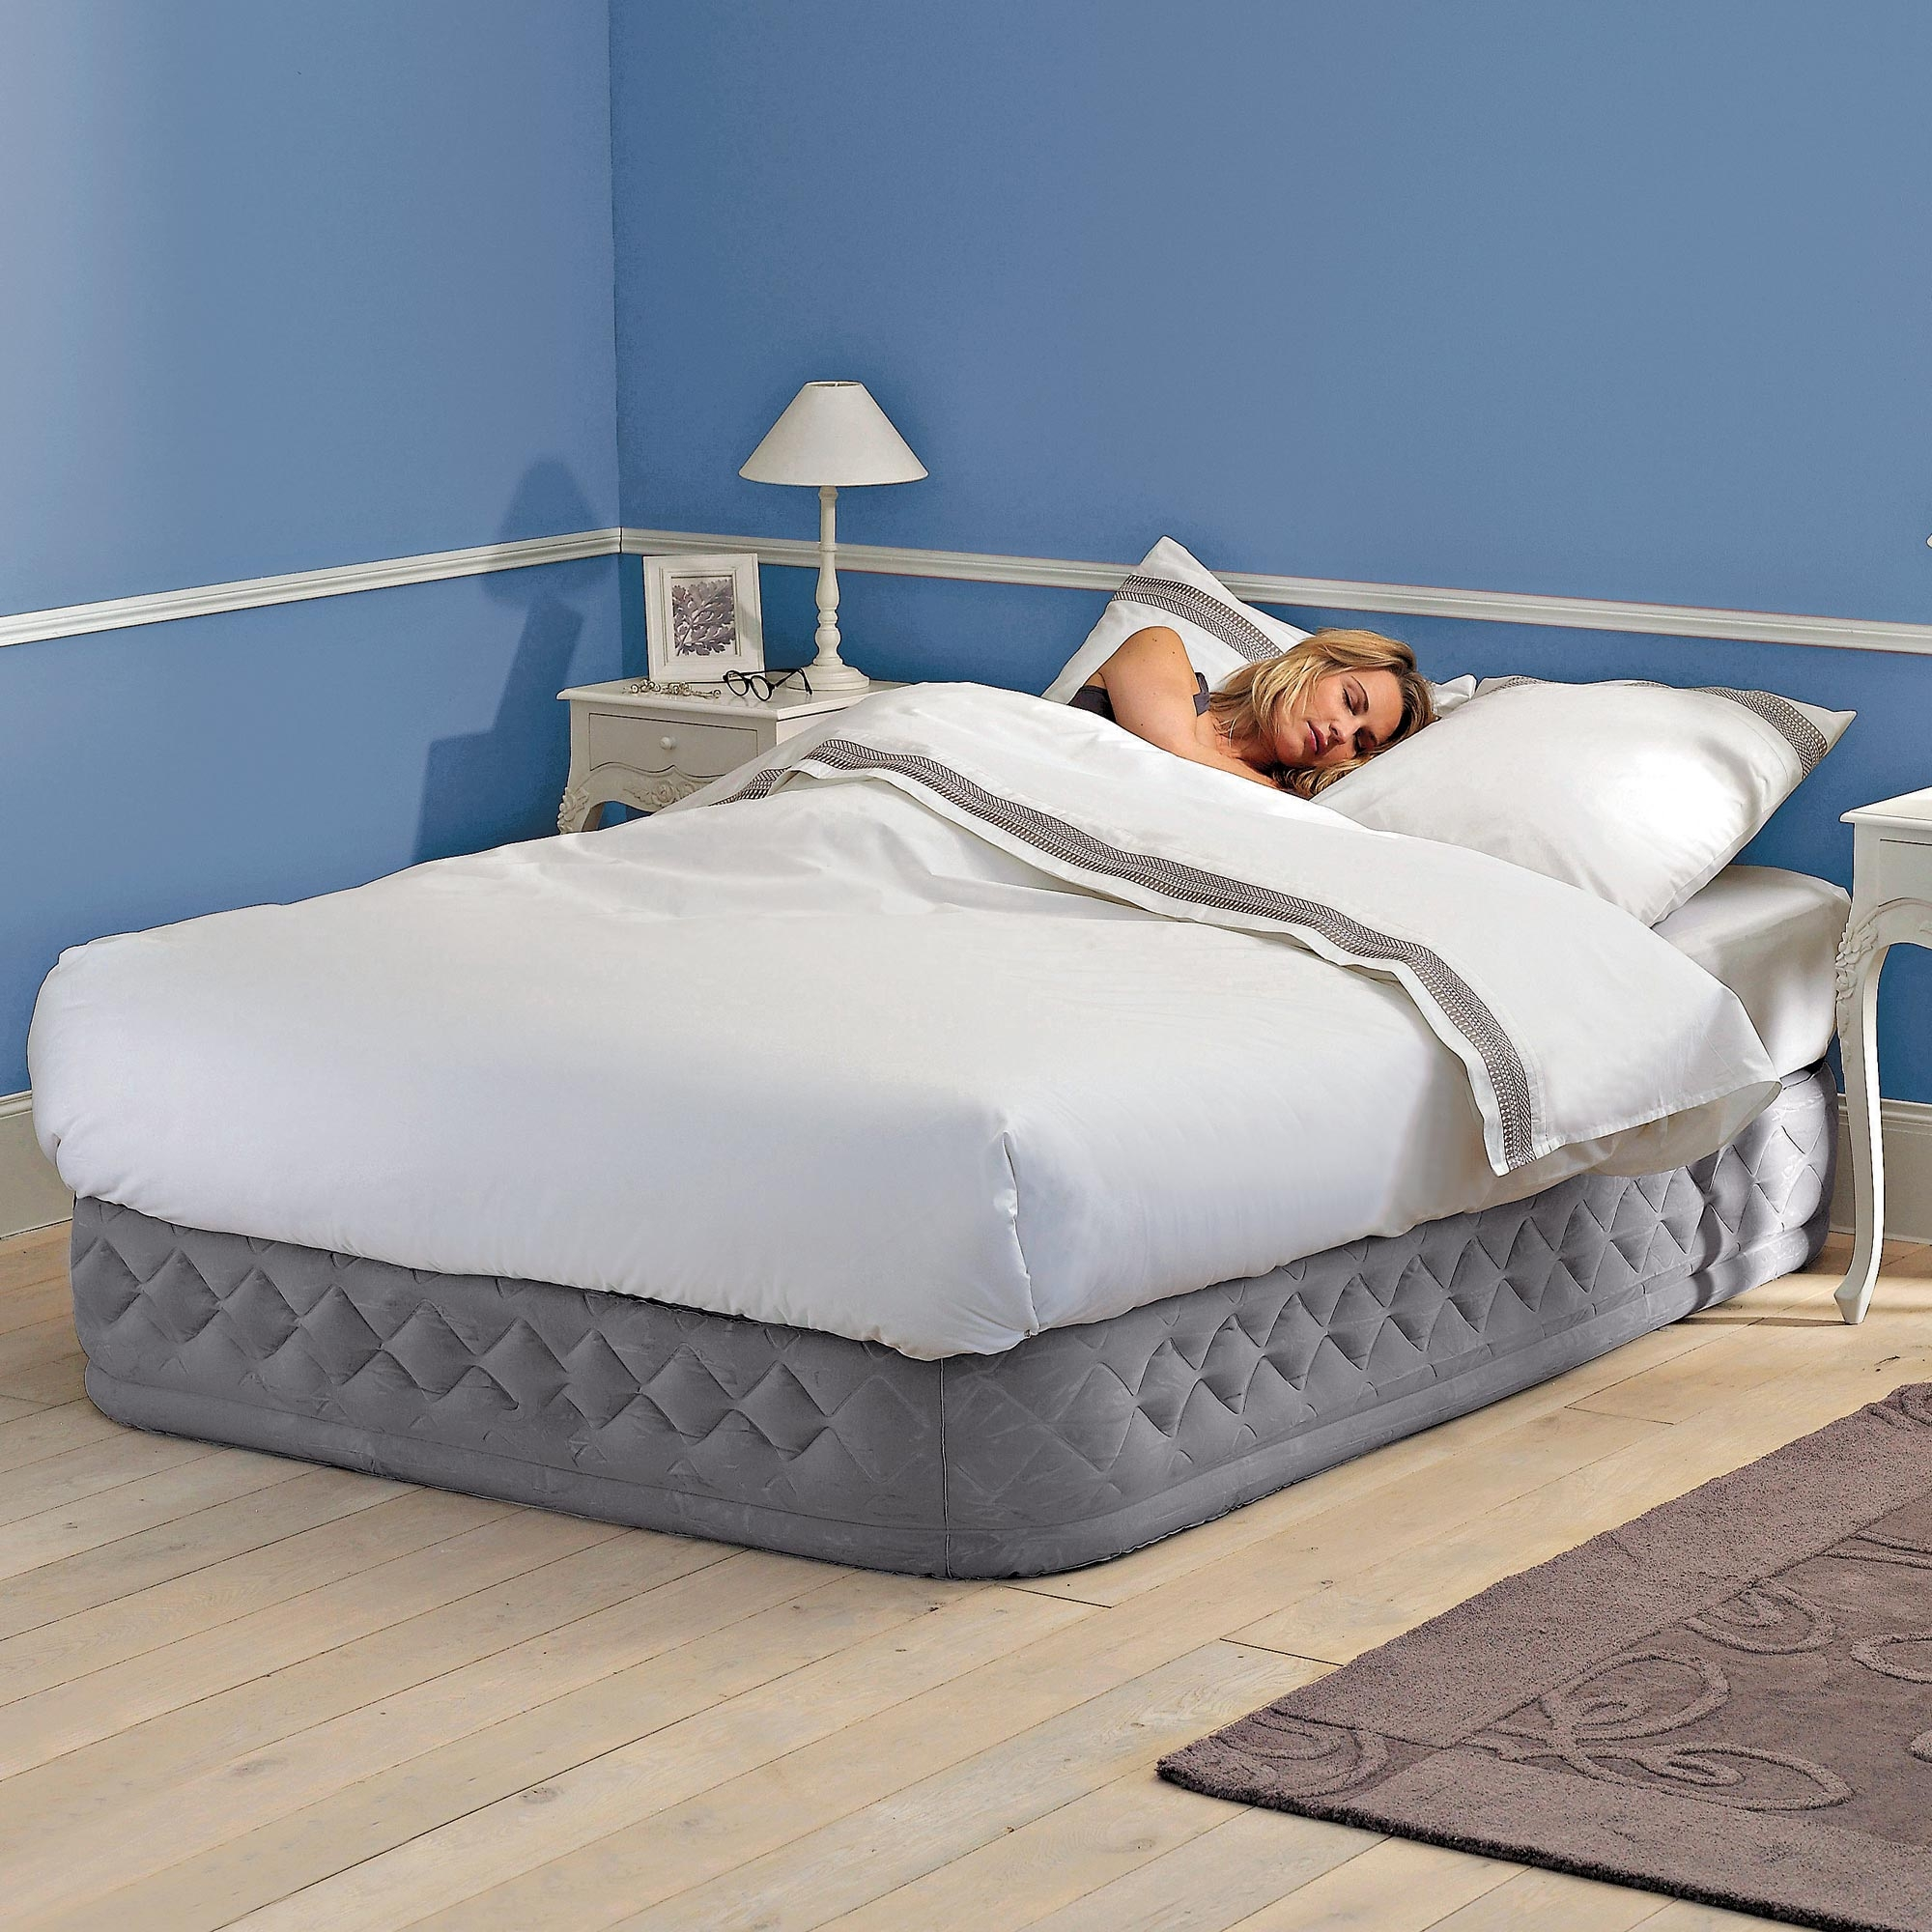 matelas gonflable 2 personnes intex supr me beige. Black Bedroom Furniture Sets. Home Design Ideas